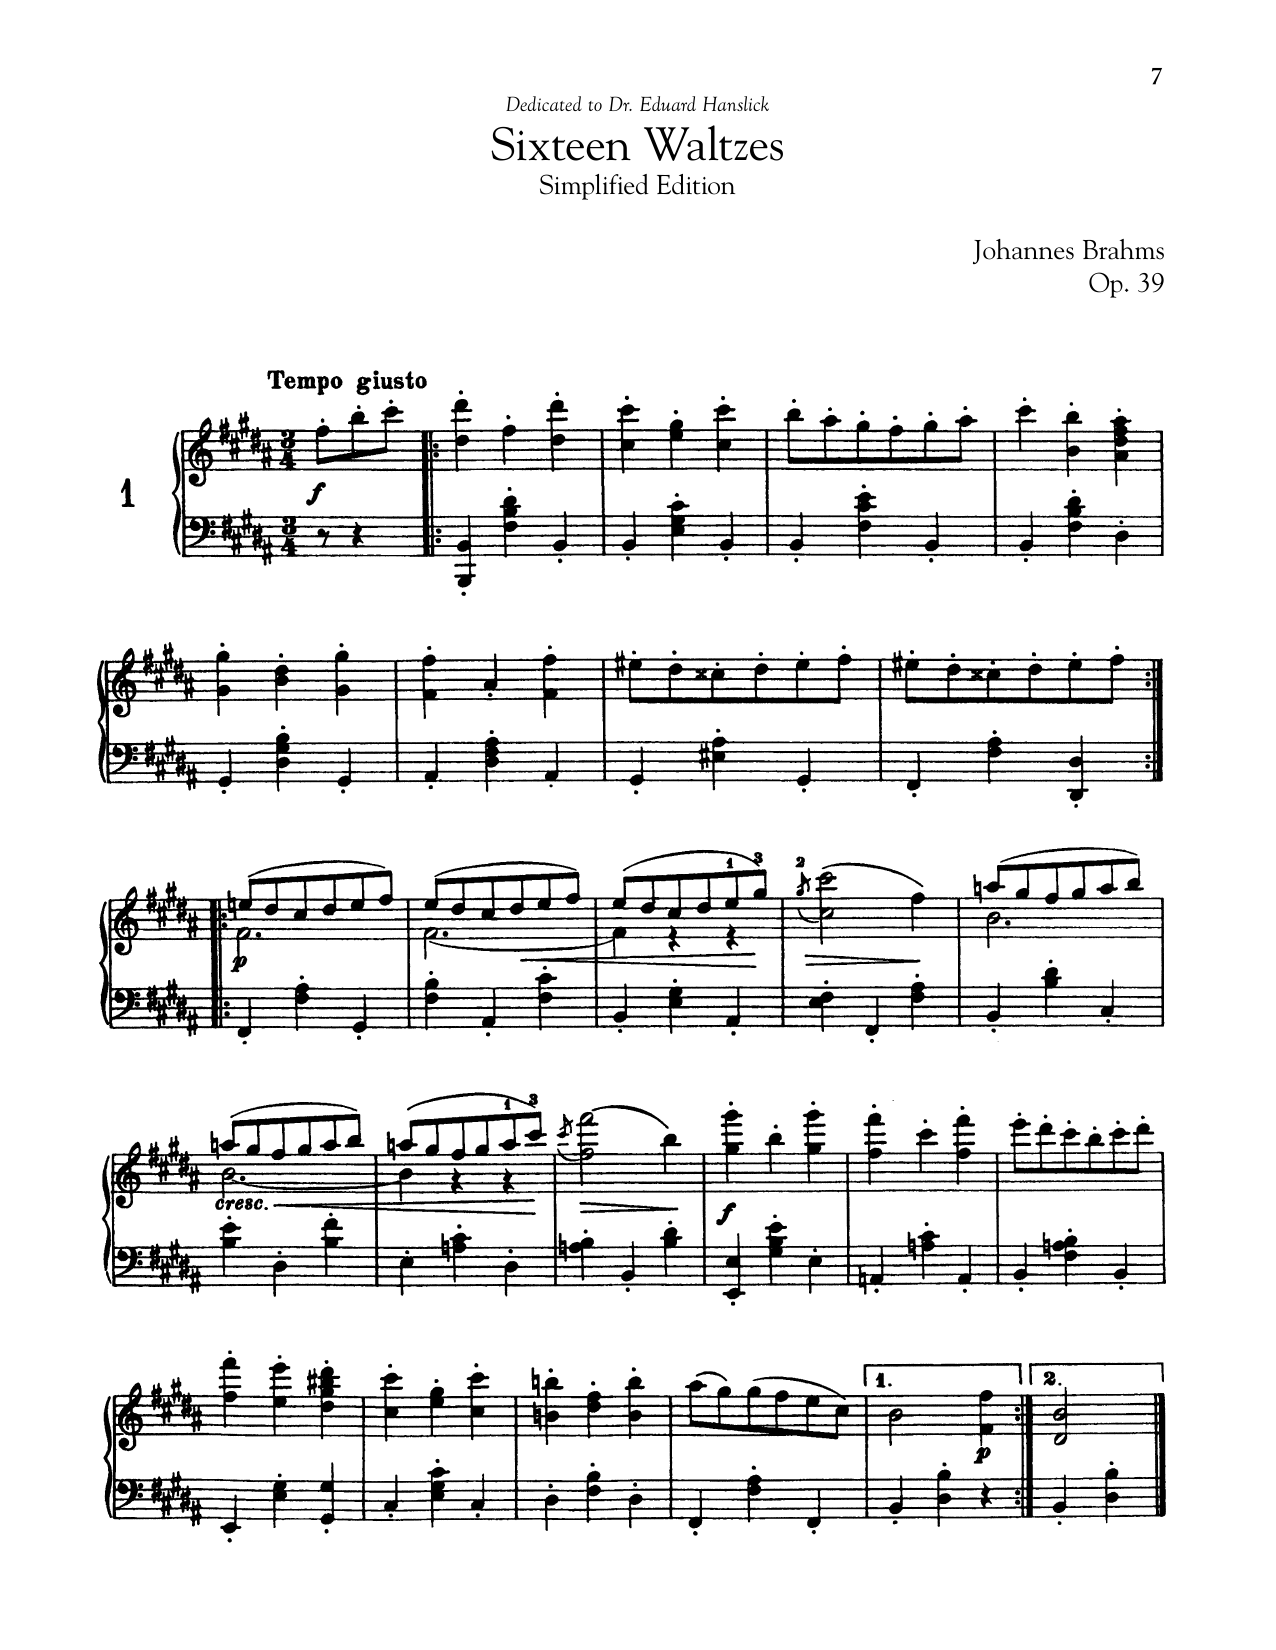 Johannes Brahms 16 Waltzes, Op. 39 (Simplified Edition) sheet music notes and chords